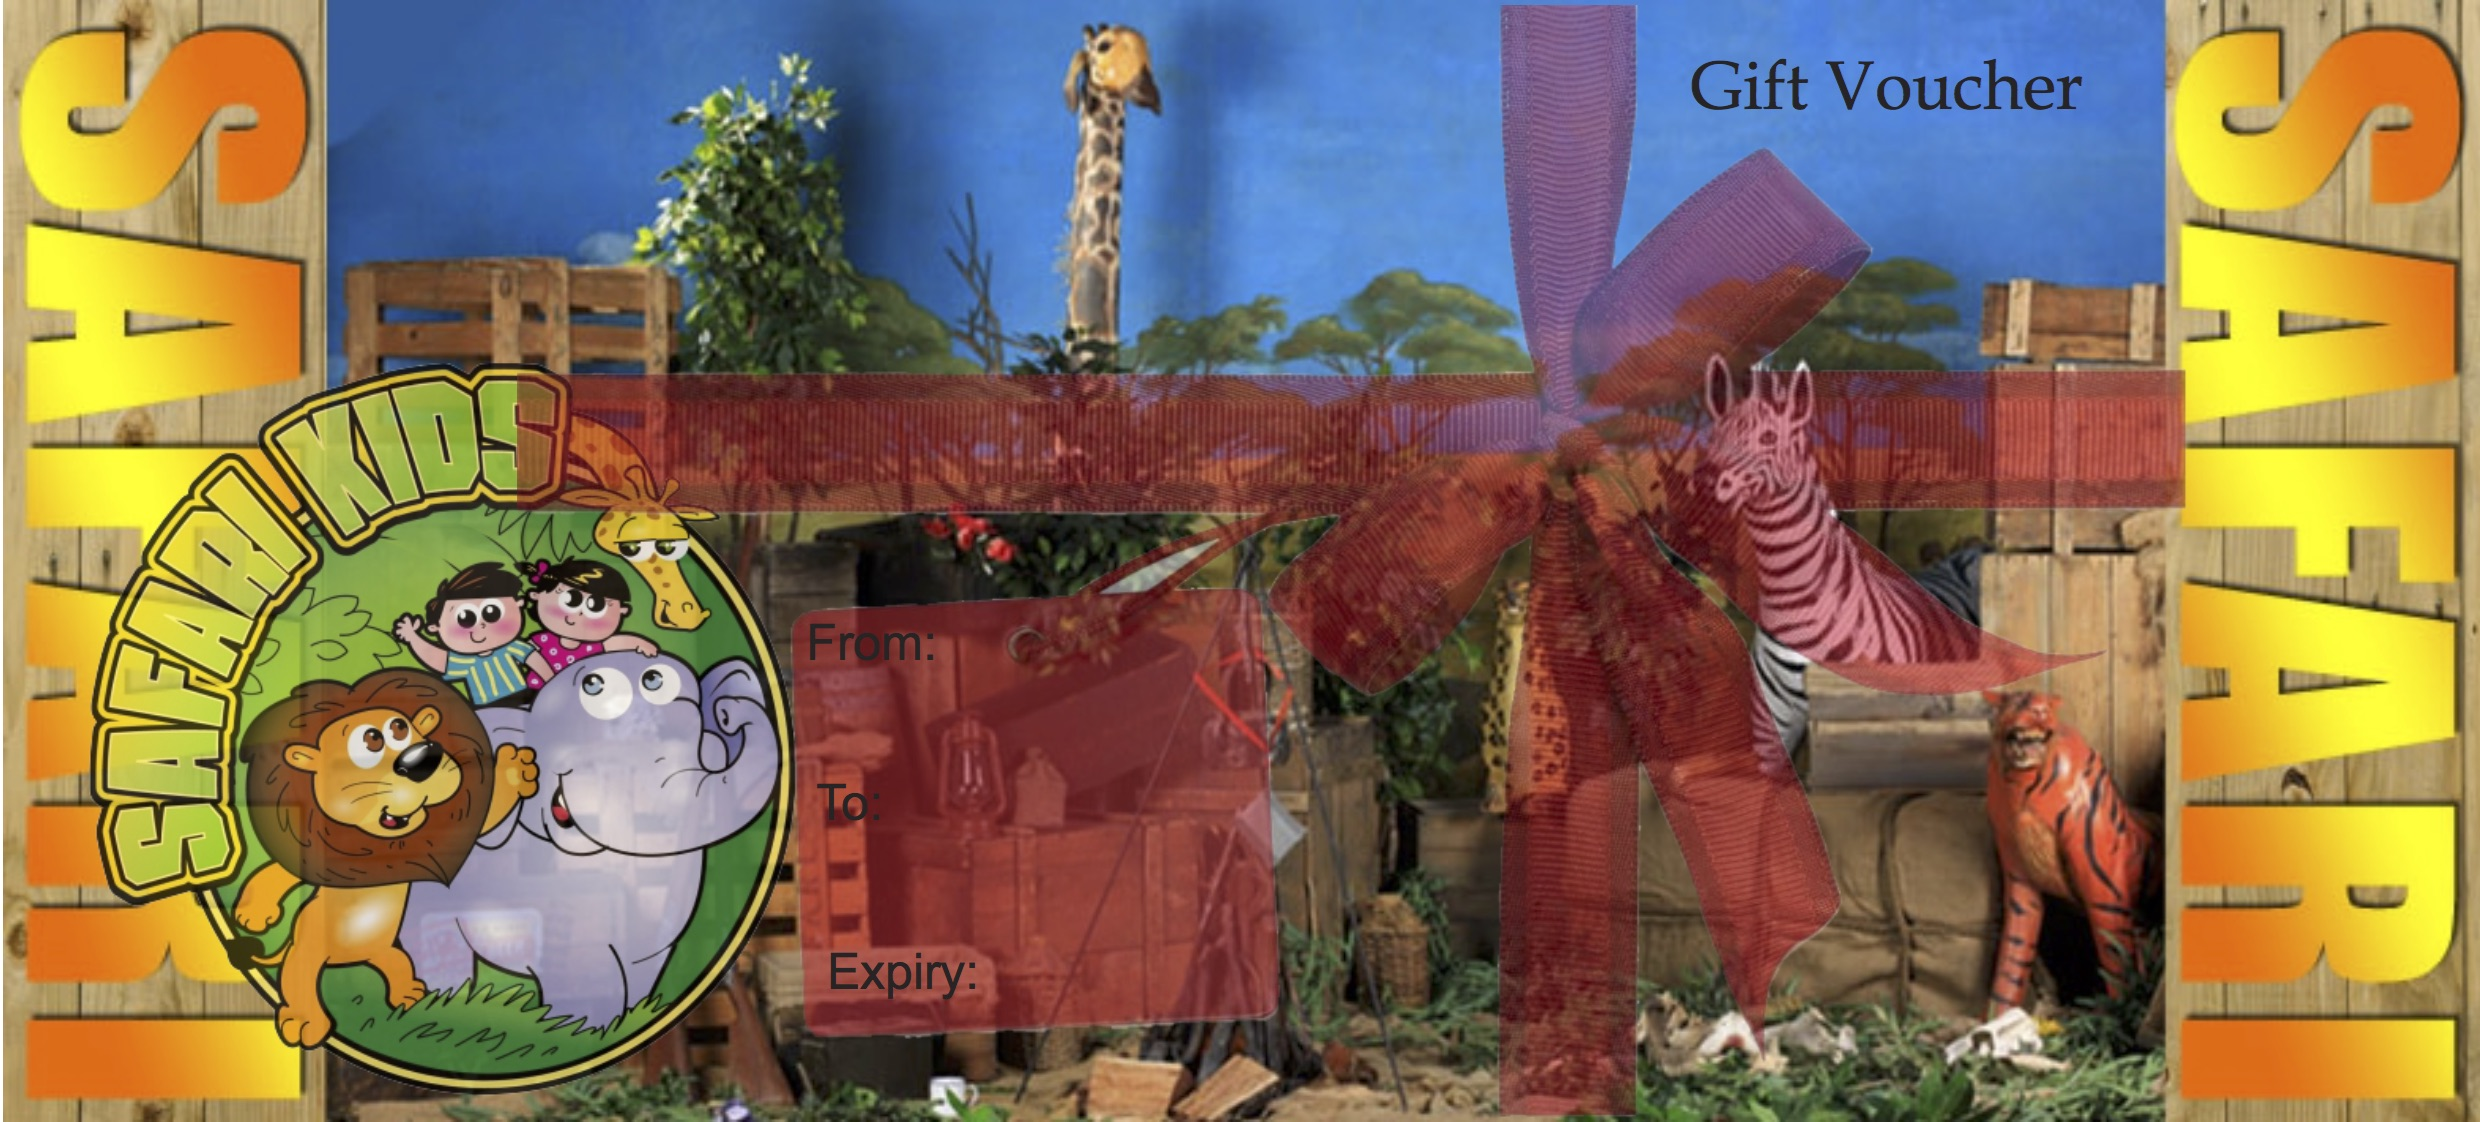 Safari Kids Gift Voucher copy